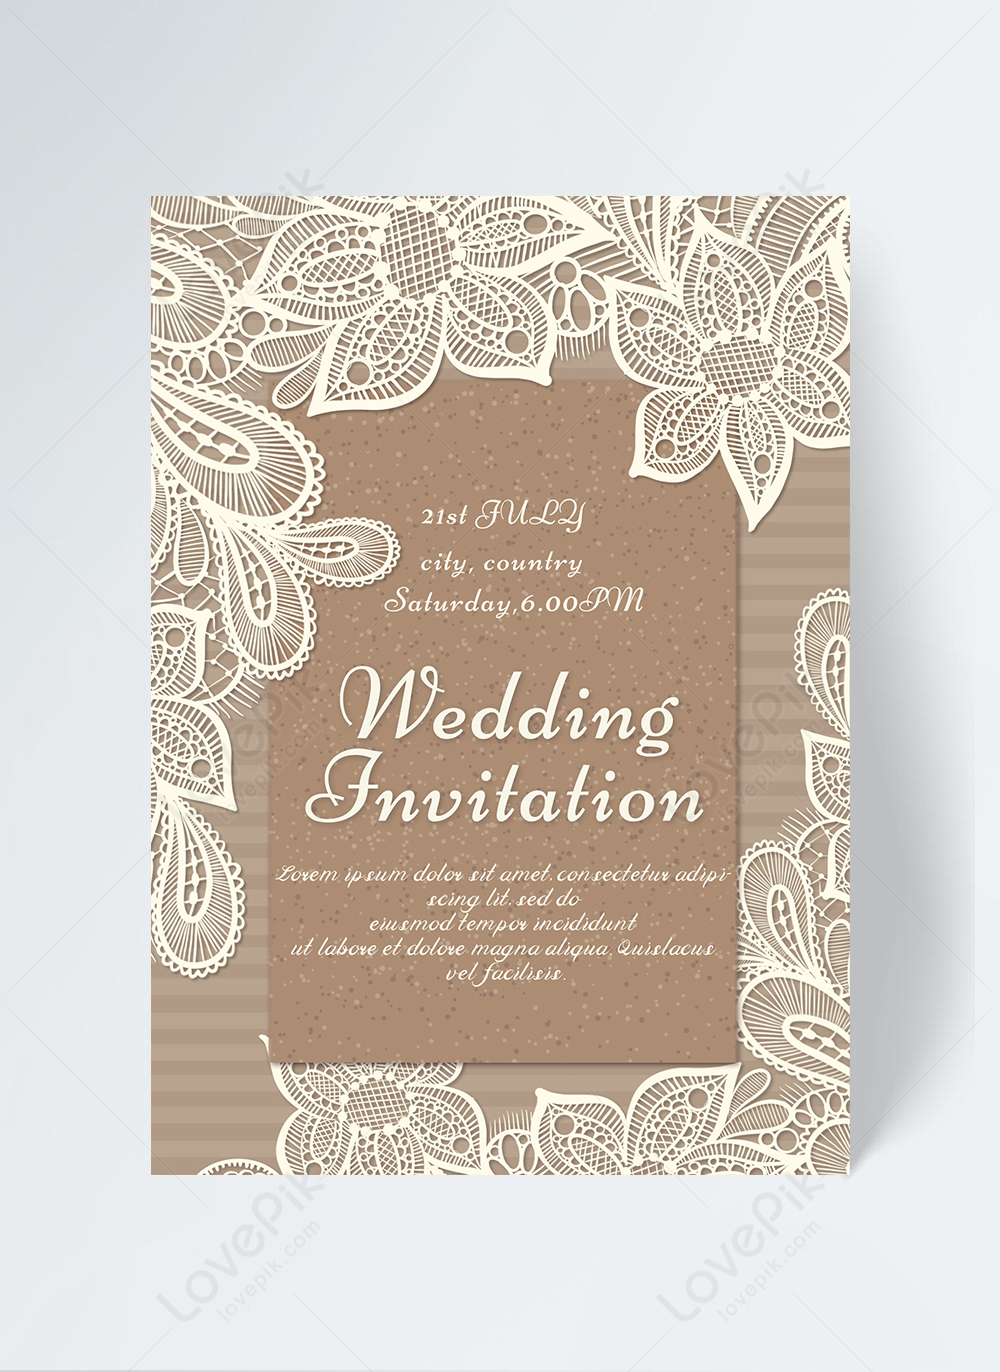 Kraft paper wedding white lace invitation template image_picture